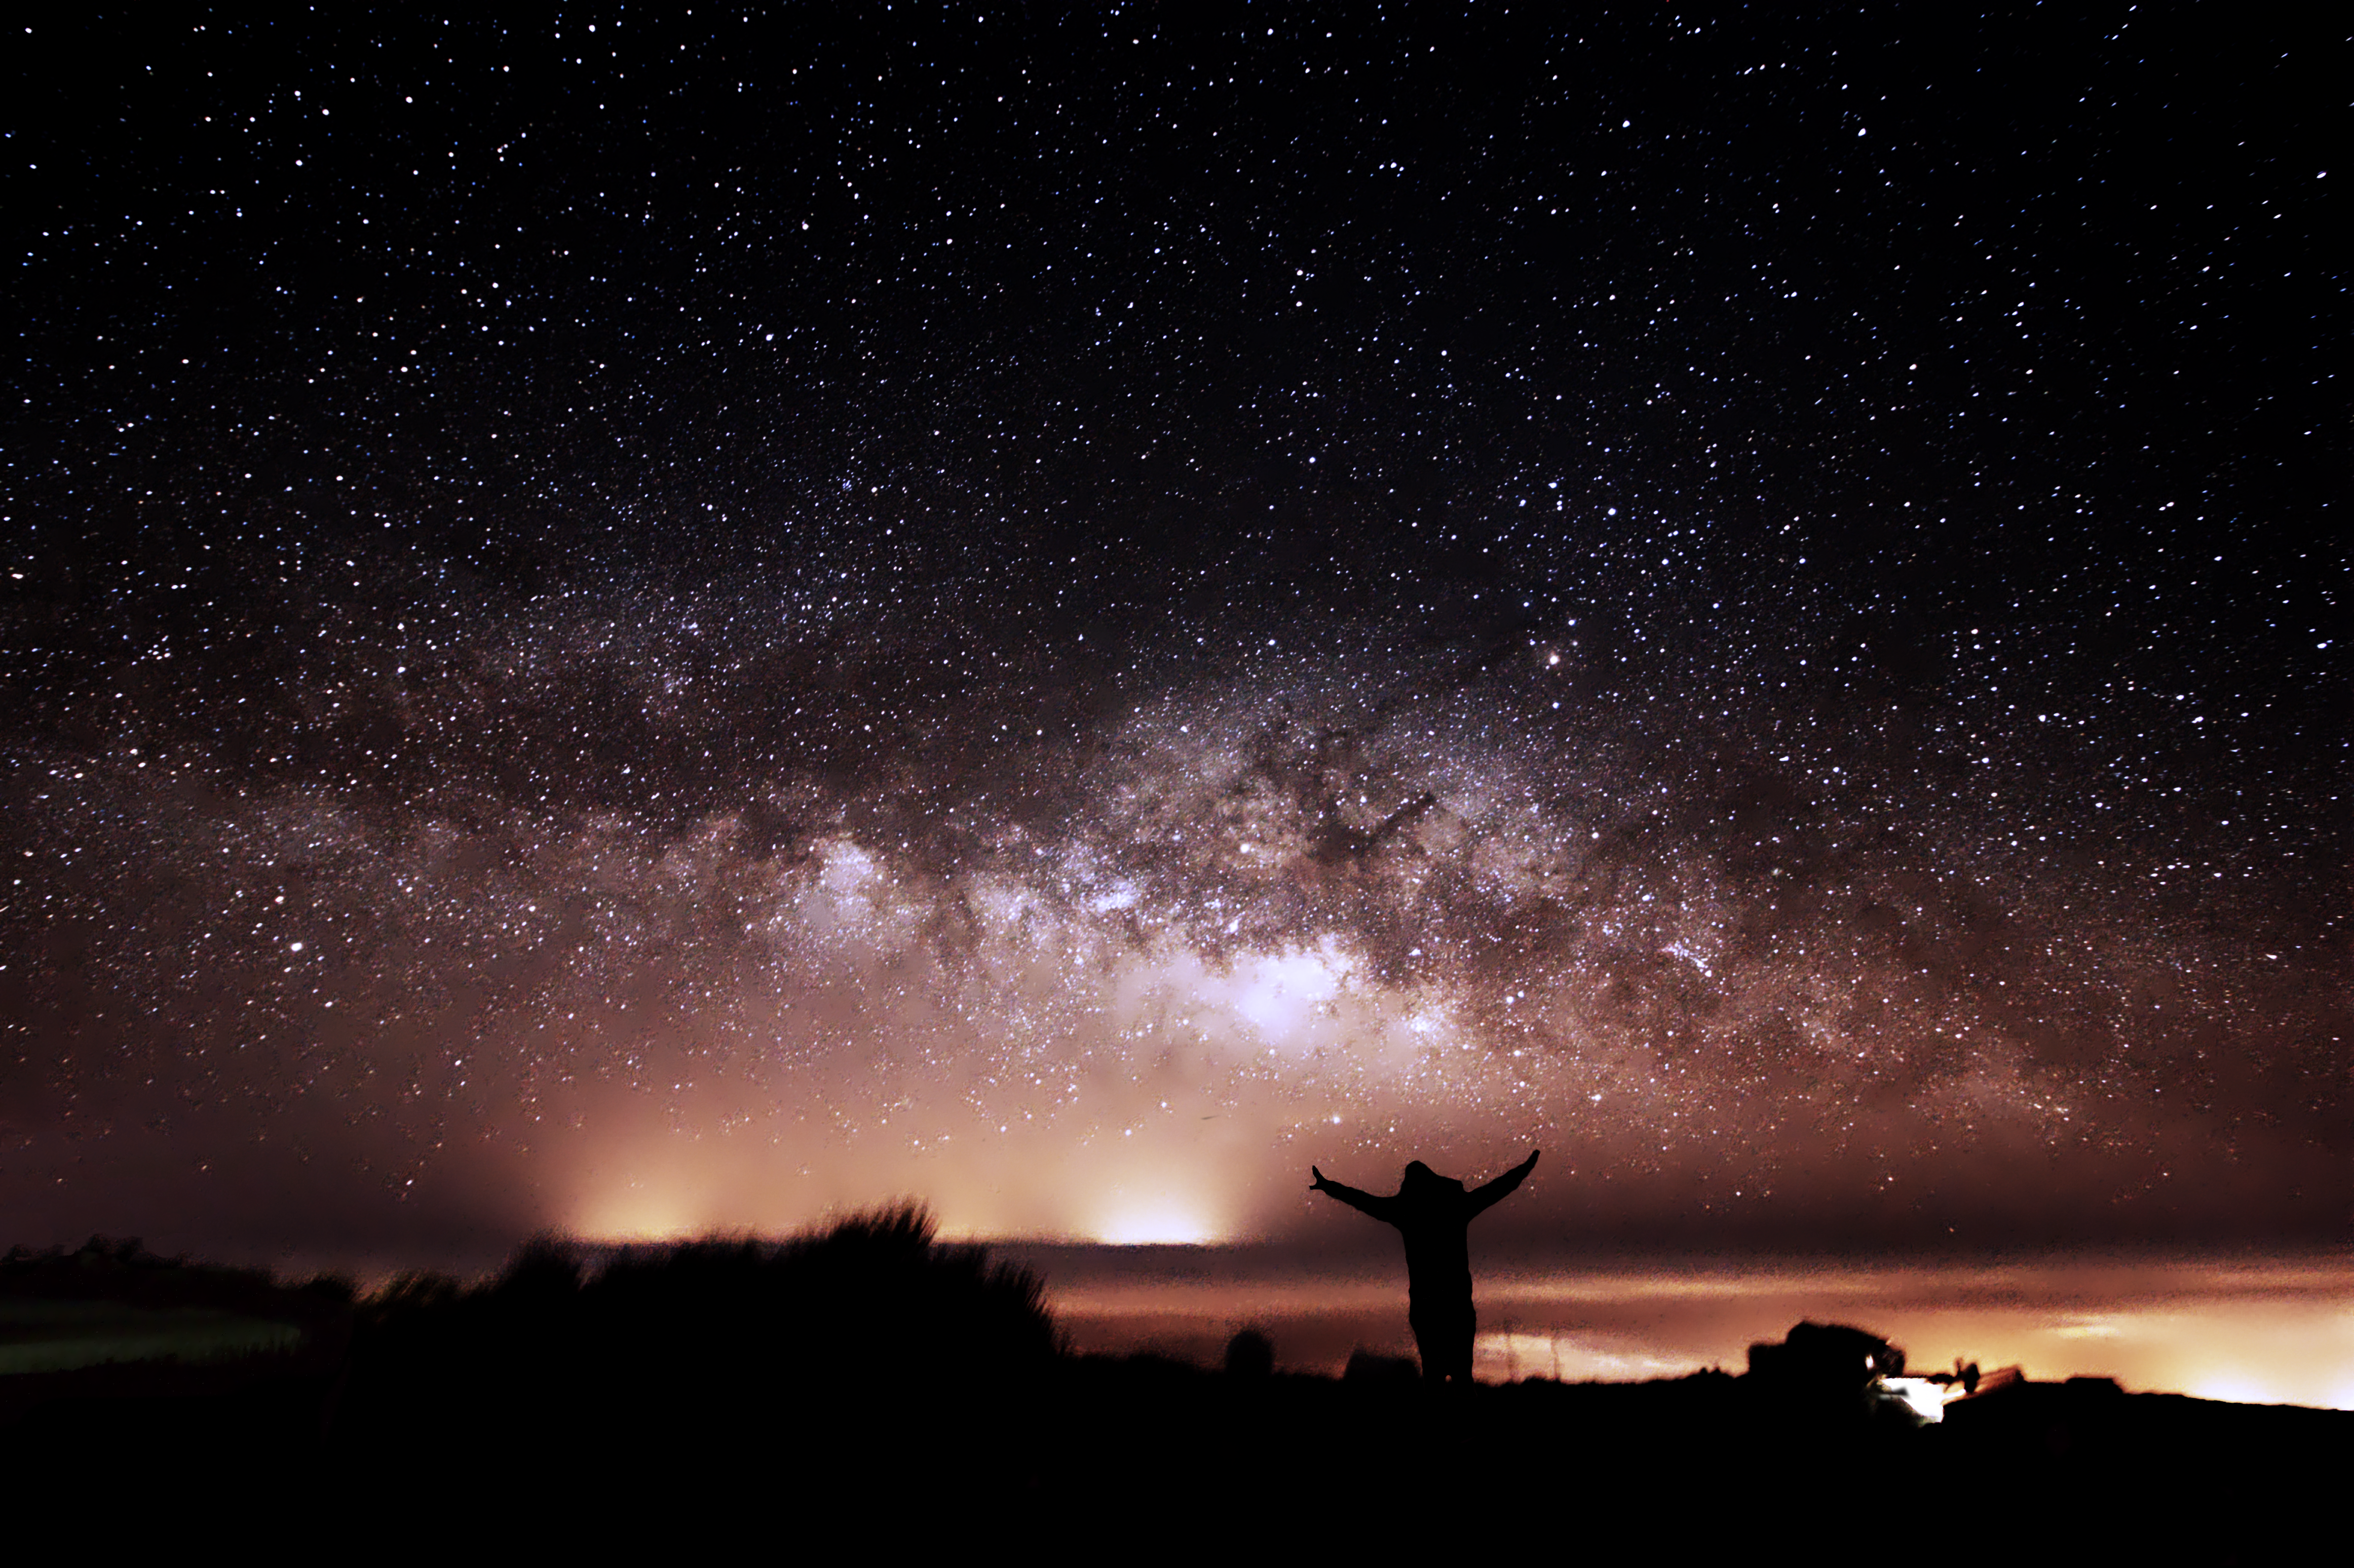 Astronomy Field Trip: Me and the Milky Way, taken by our expedition leader and astrophotographer Dr Antonio Martin-Carrillo!